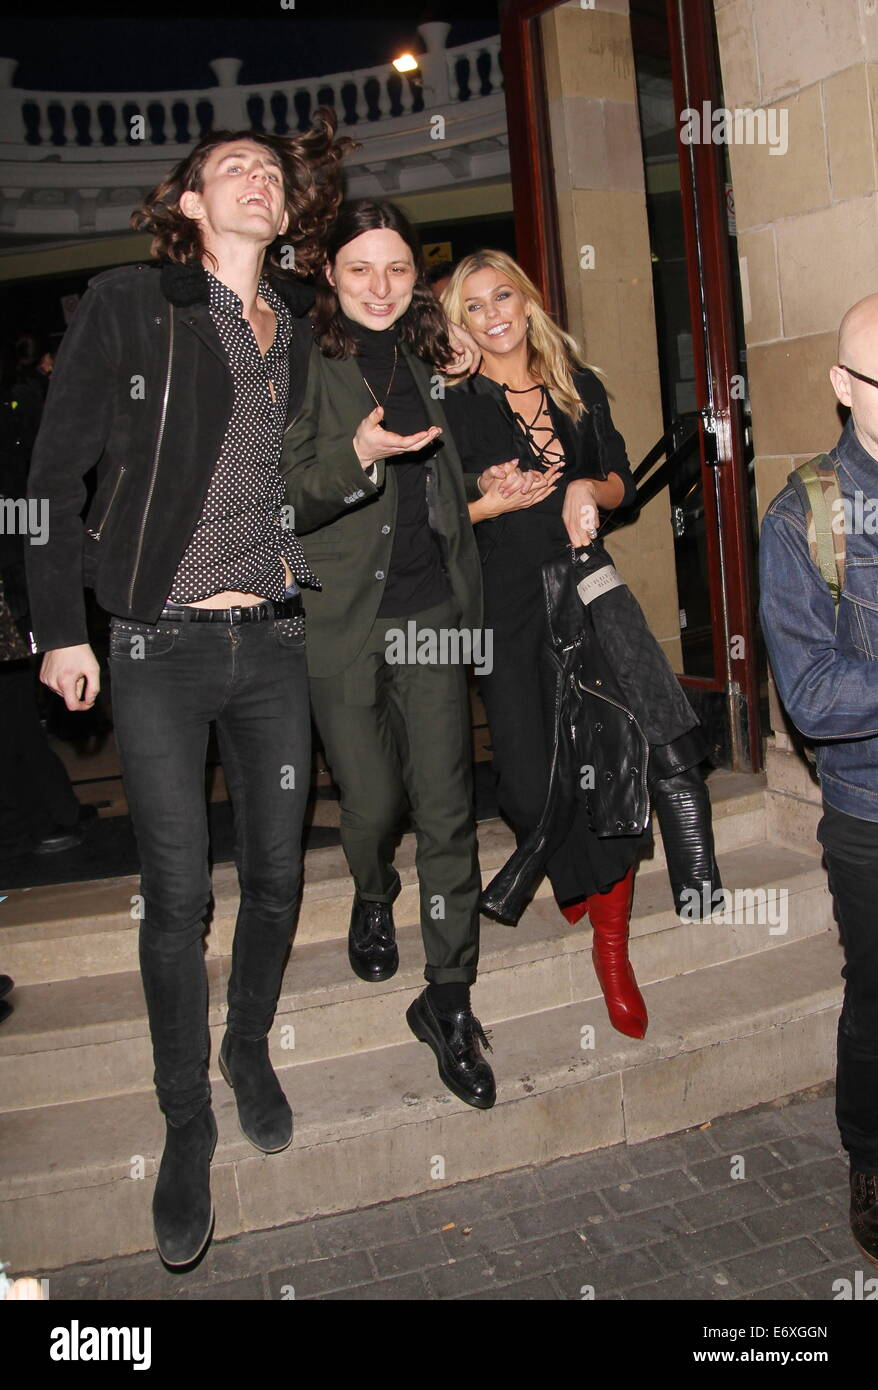 The 2014 NME Awards at the Brixton Academy - Departures  Featuring: Abbey Clancy Where: London, United Kingdom When: Stock Photo